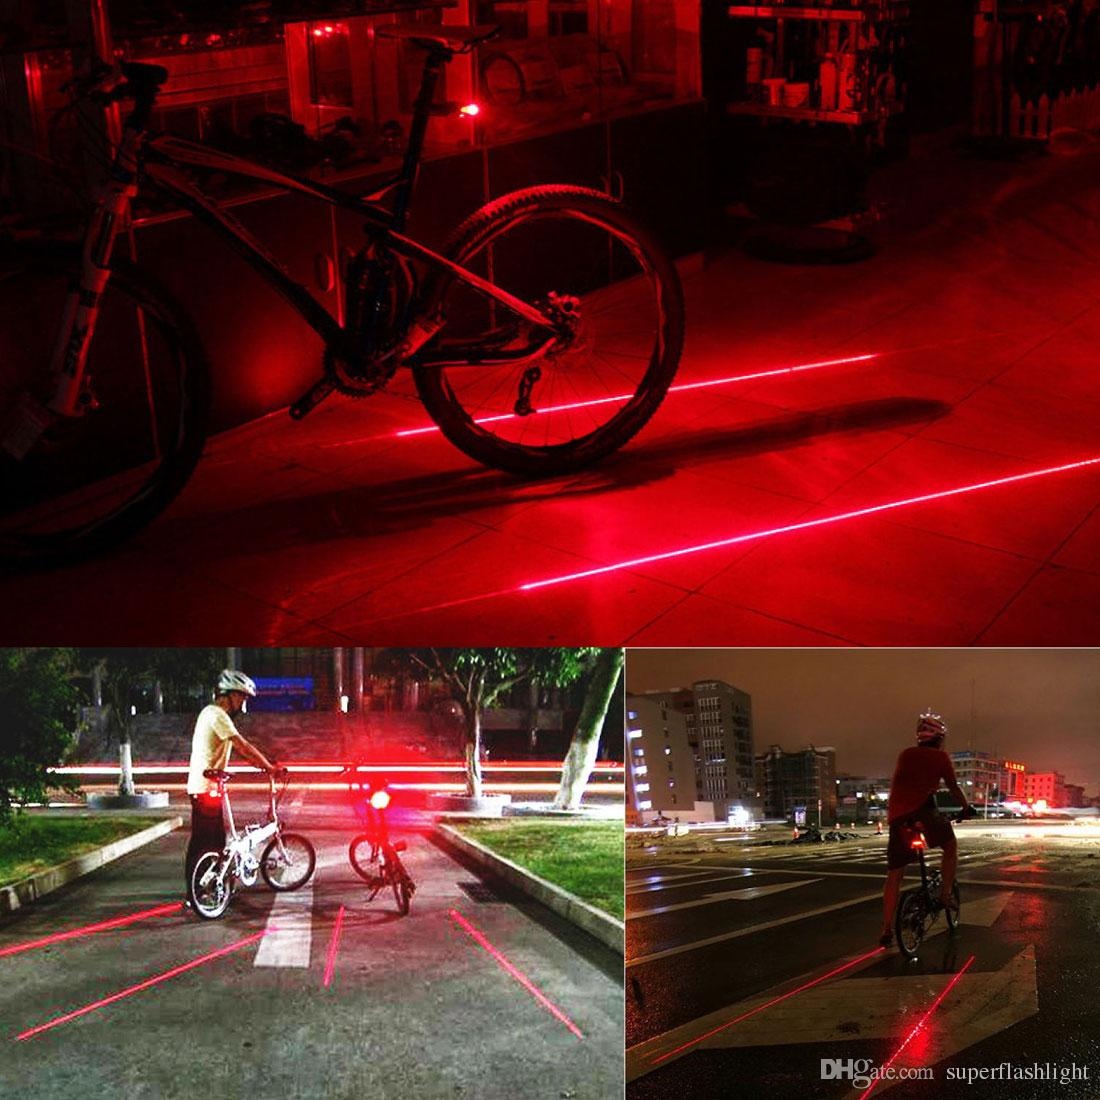 Waterproof 8000Lm 5 x CREE XM-L U2 LED Front Bicycle Light Bike Headlamp Lamp Headlight+ 2 Laser 5 LED Rear Light BLL_00S